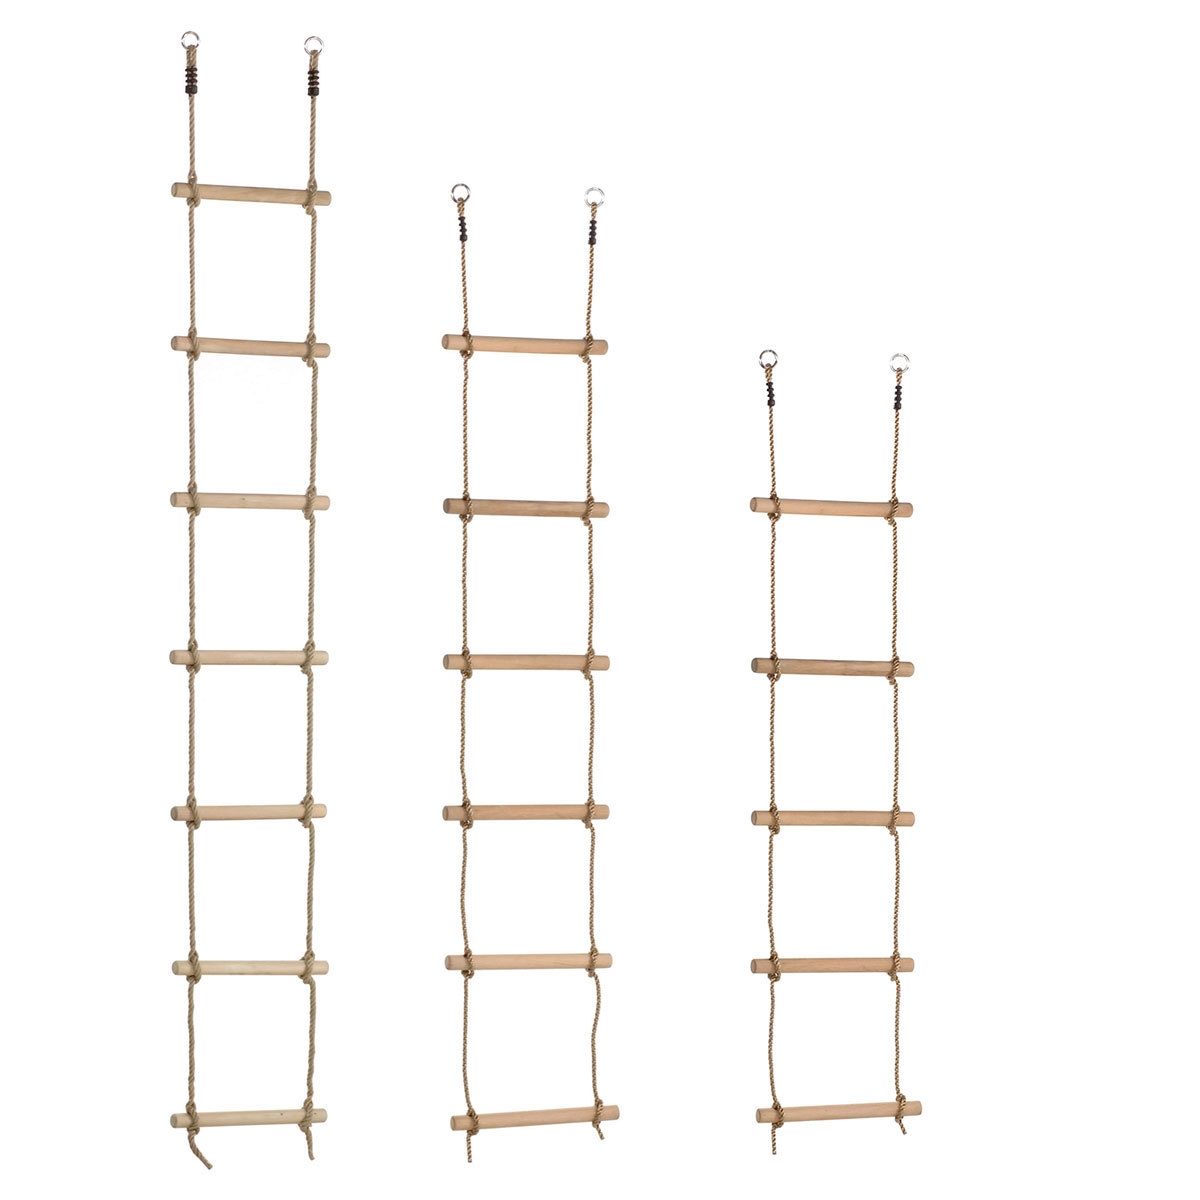 Images of Rope Ladder | 1200x1200